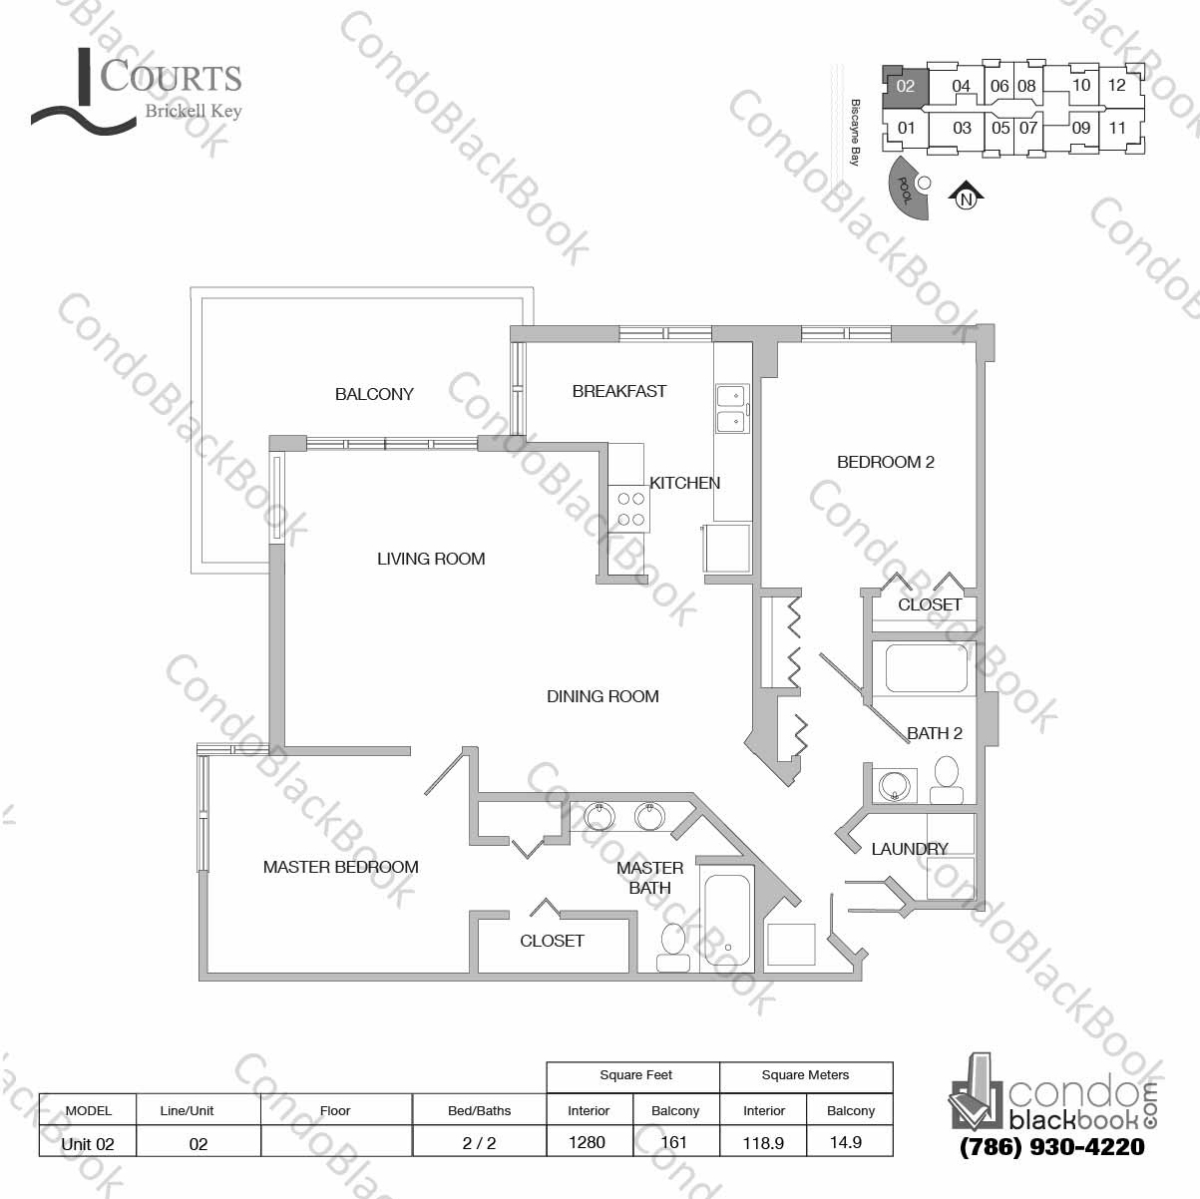 Floor plan for Courts Condo Brickell Key Brickell Key Miami, model Unit 02, line 02, 2 / 2 bedrooms, 1280 sq ft